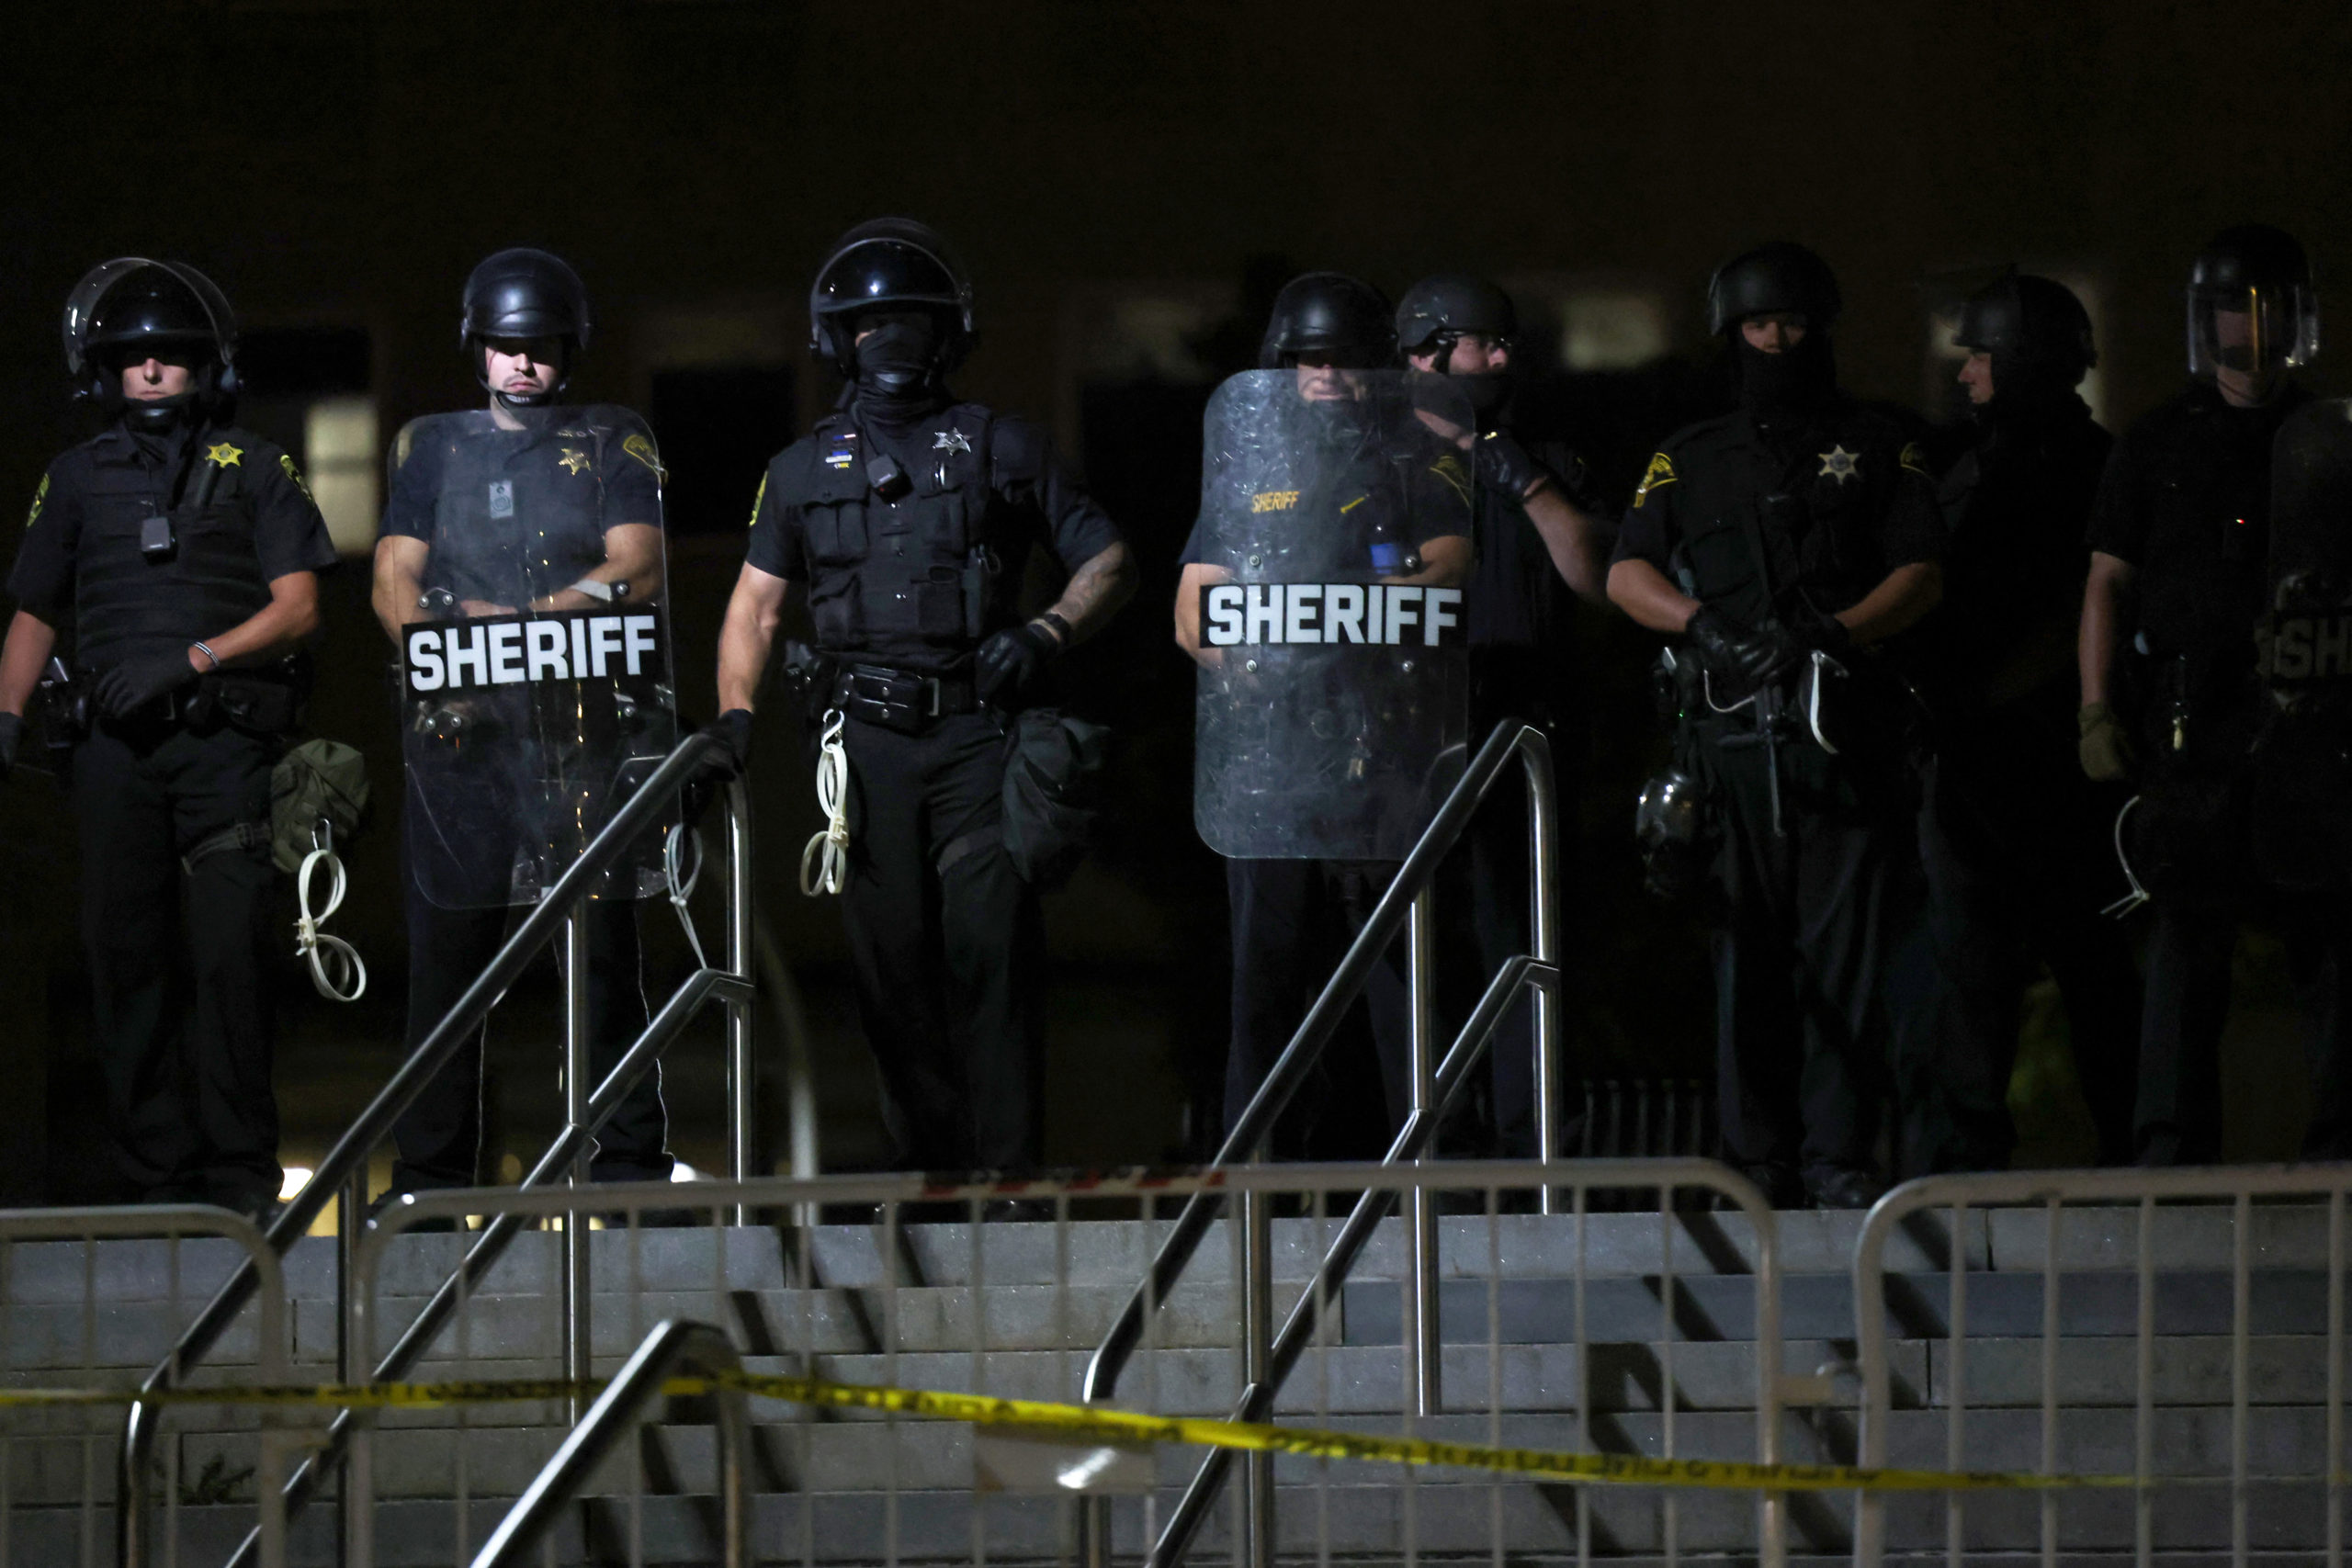 ROCHESTER, NEW YORK - SEPTEMBER 06: Police officers stand in line as demonstrators take up space in front of the Public Safety building after marching for Daniel Prude on September 06, 2020 in Rochester, New York. Prude died after being arrested on March 23 by Rochester police officers who had placed a